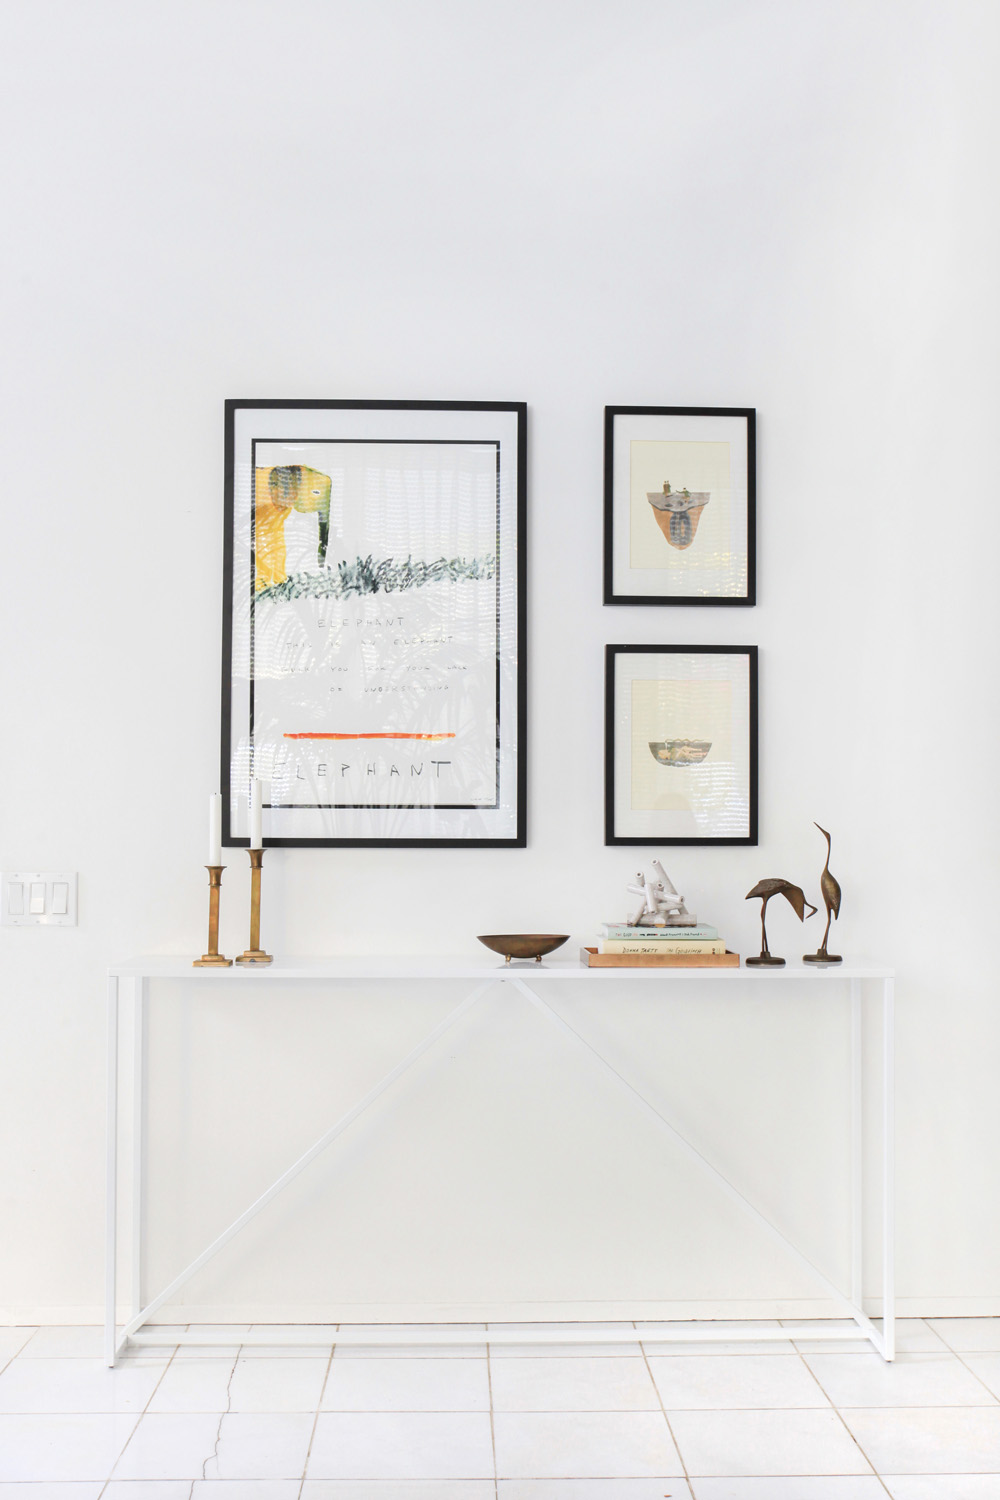 Decor pieces add personality to a space